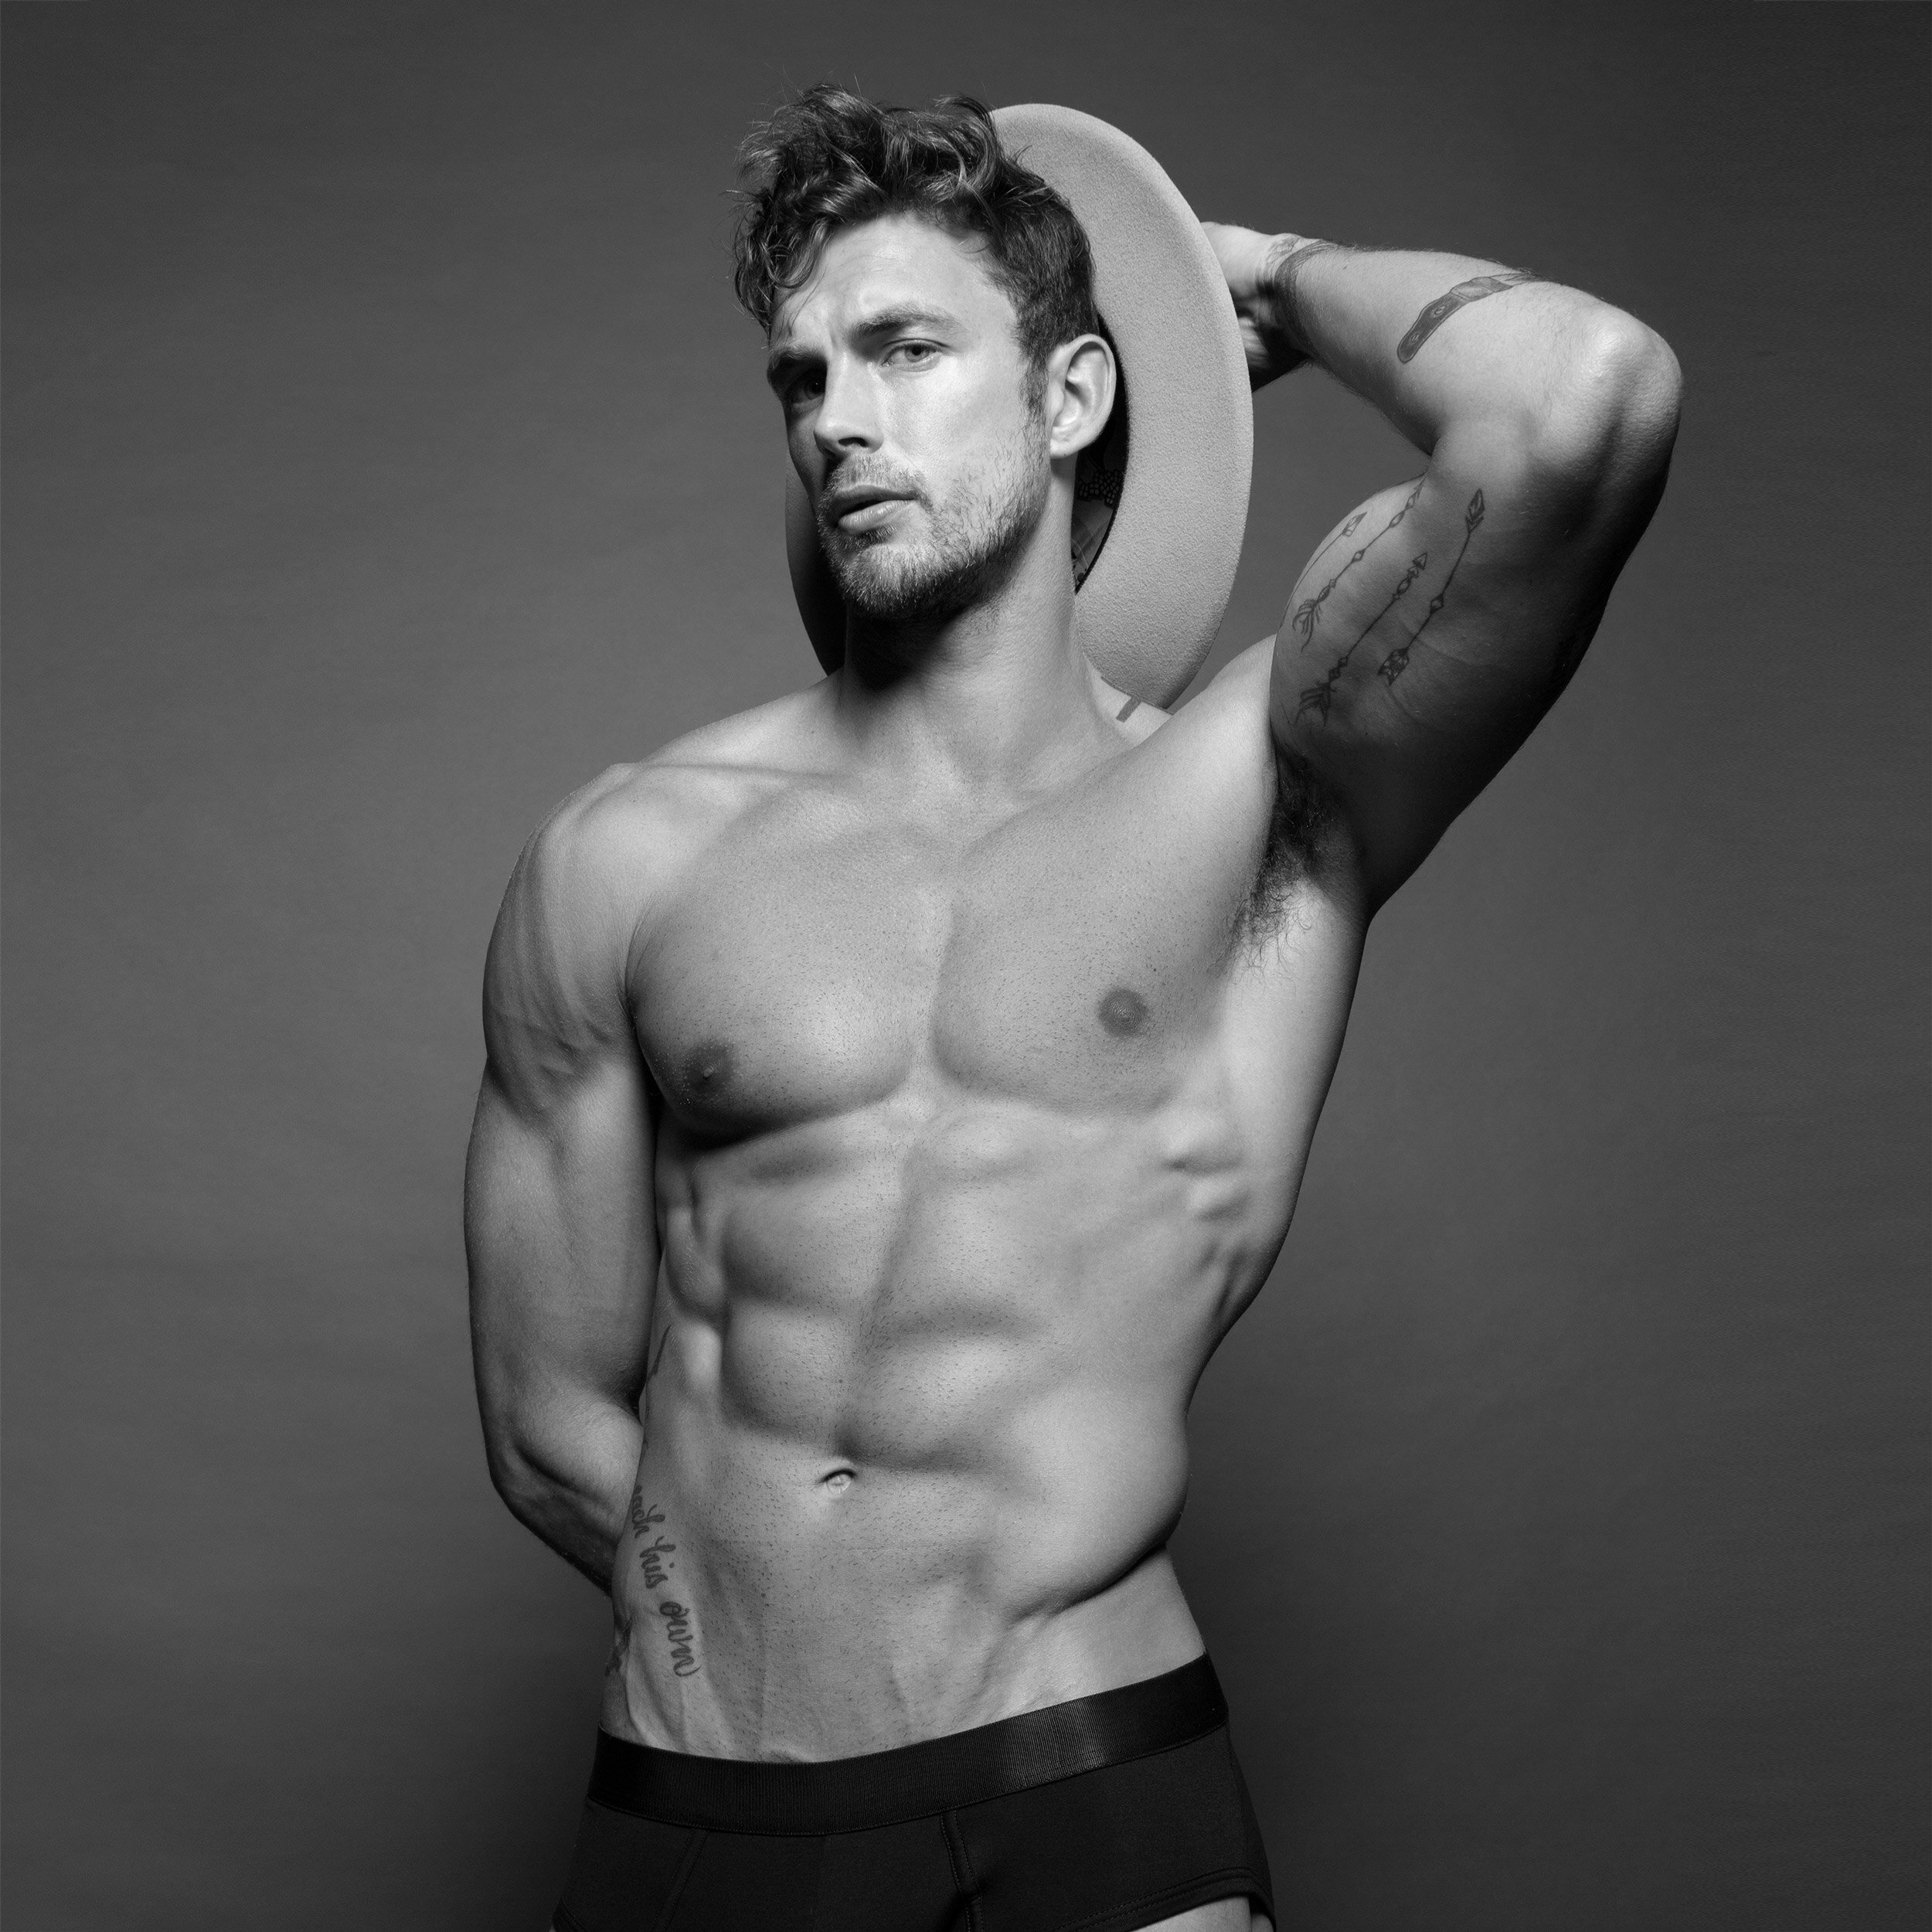 Christian-Hogue-by-Ruben-Tomas-for-The-Perfect-Man-Magazine_04.jpg